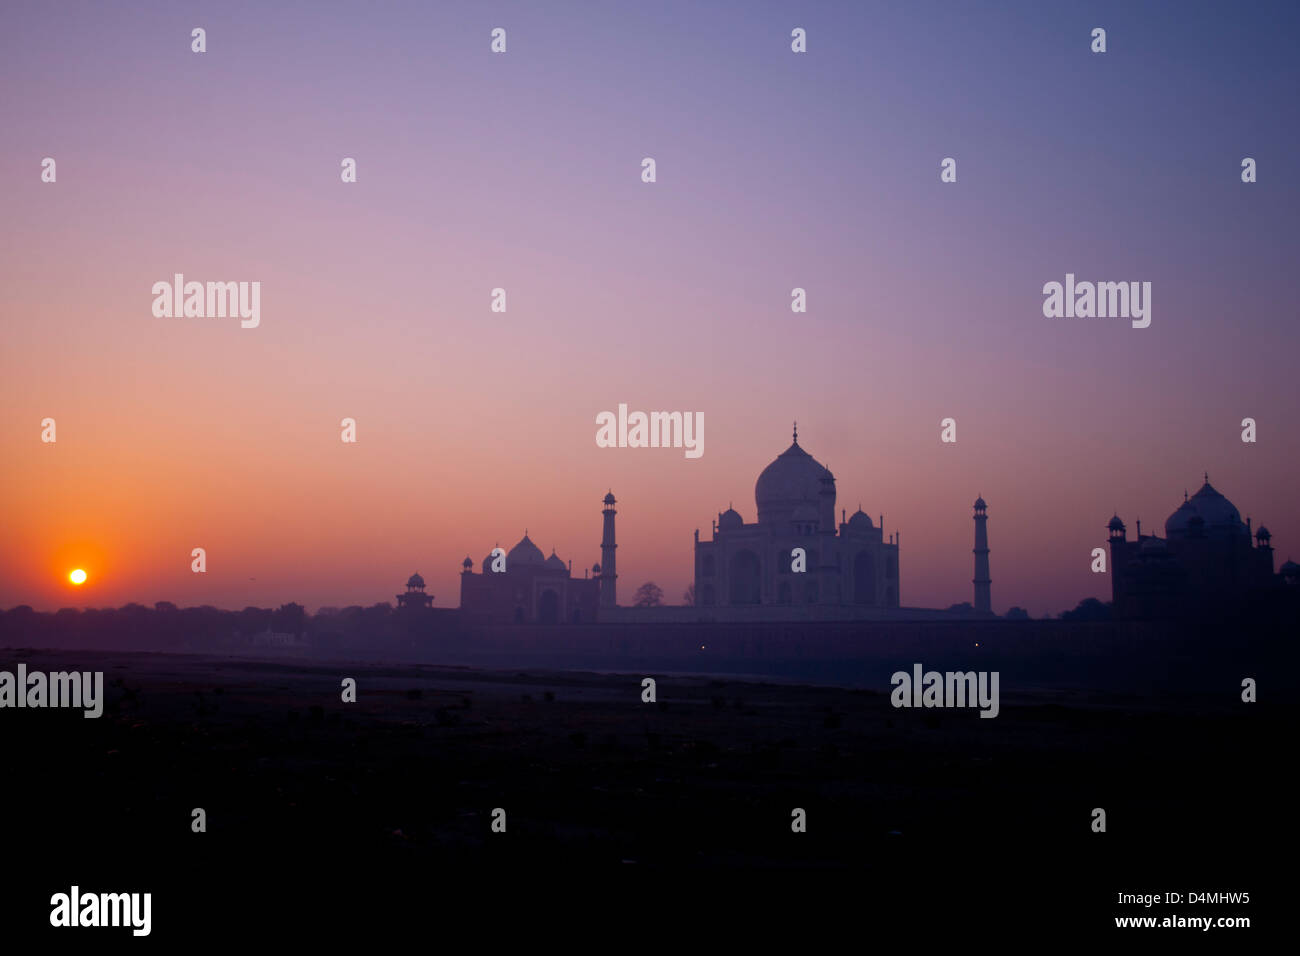 Sunrise over the Taj Mahal viewed from mehtab bagh park, across the dried up river Yamuna Stock Photo